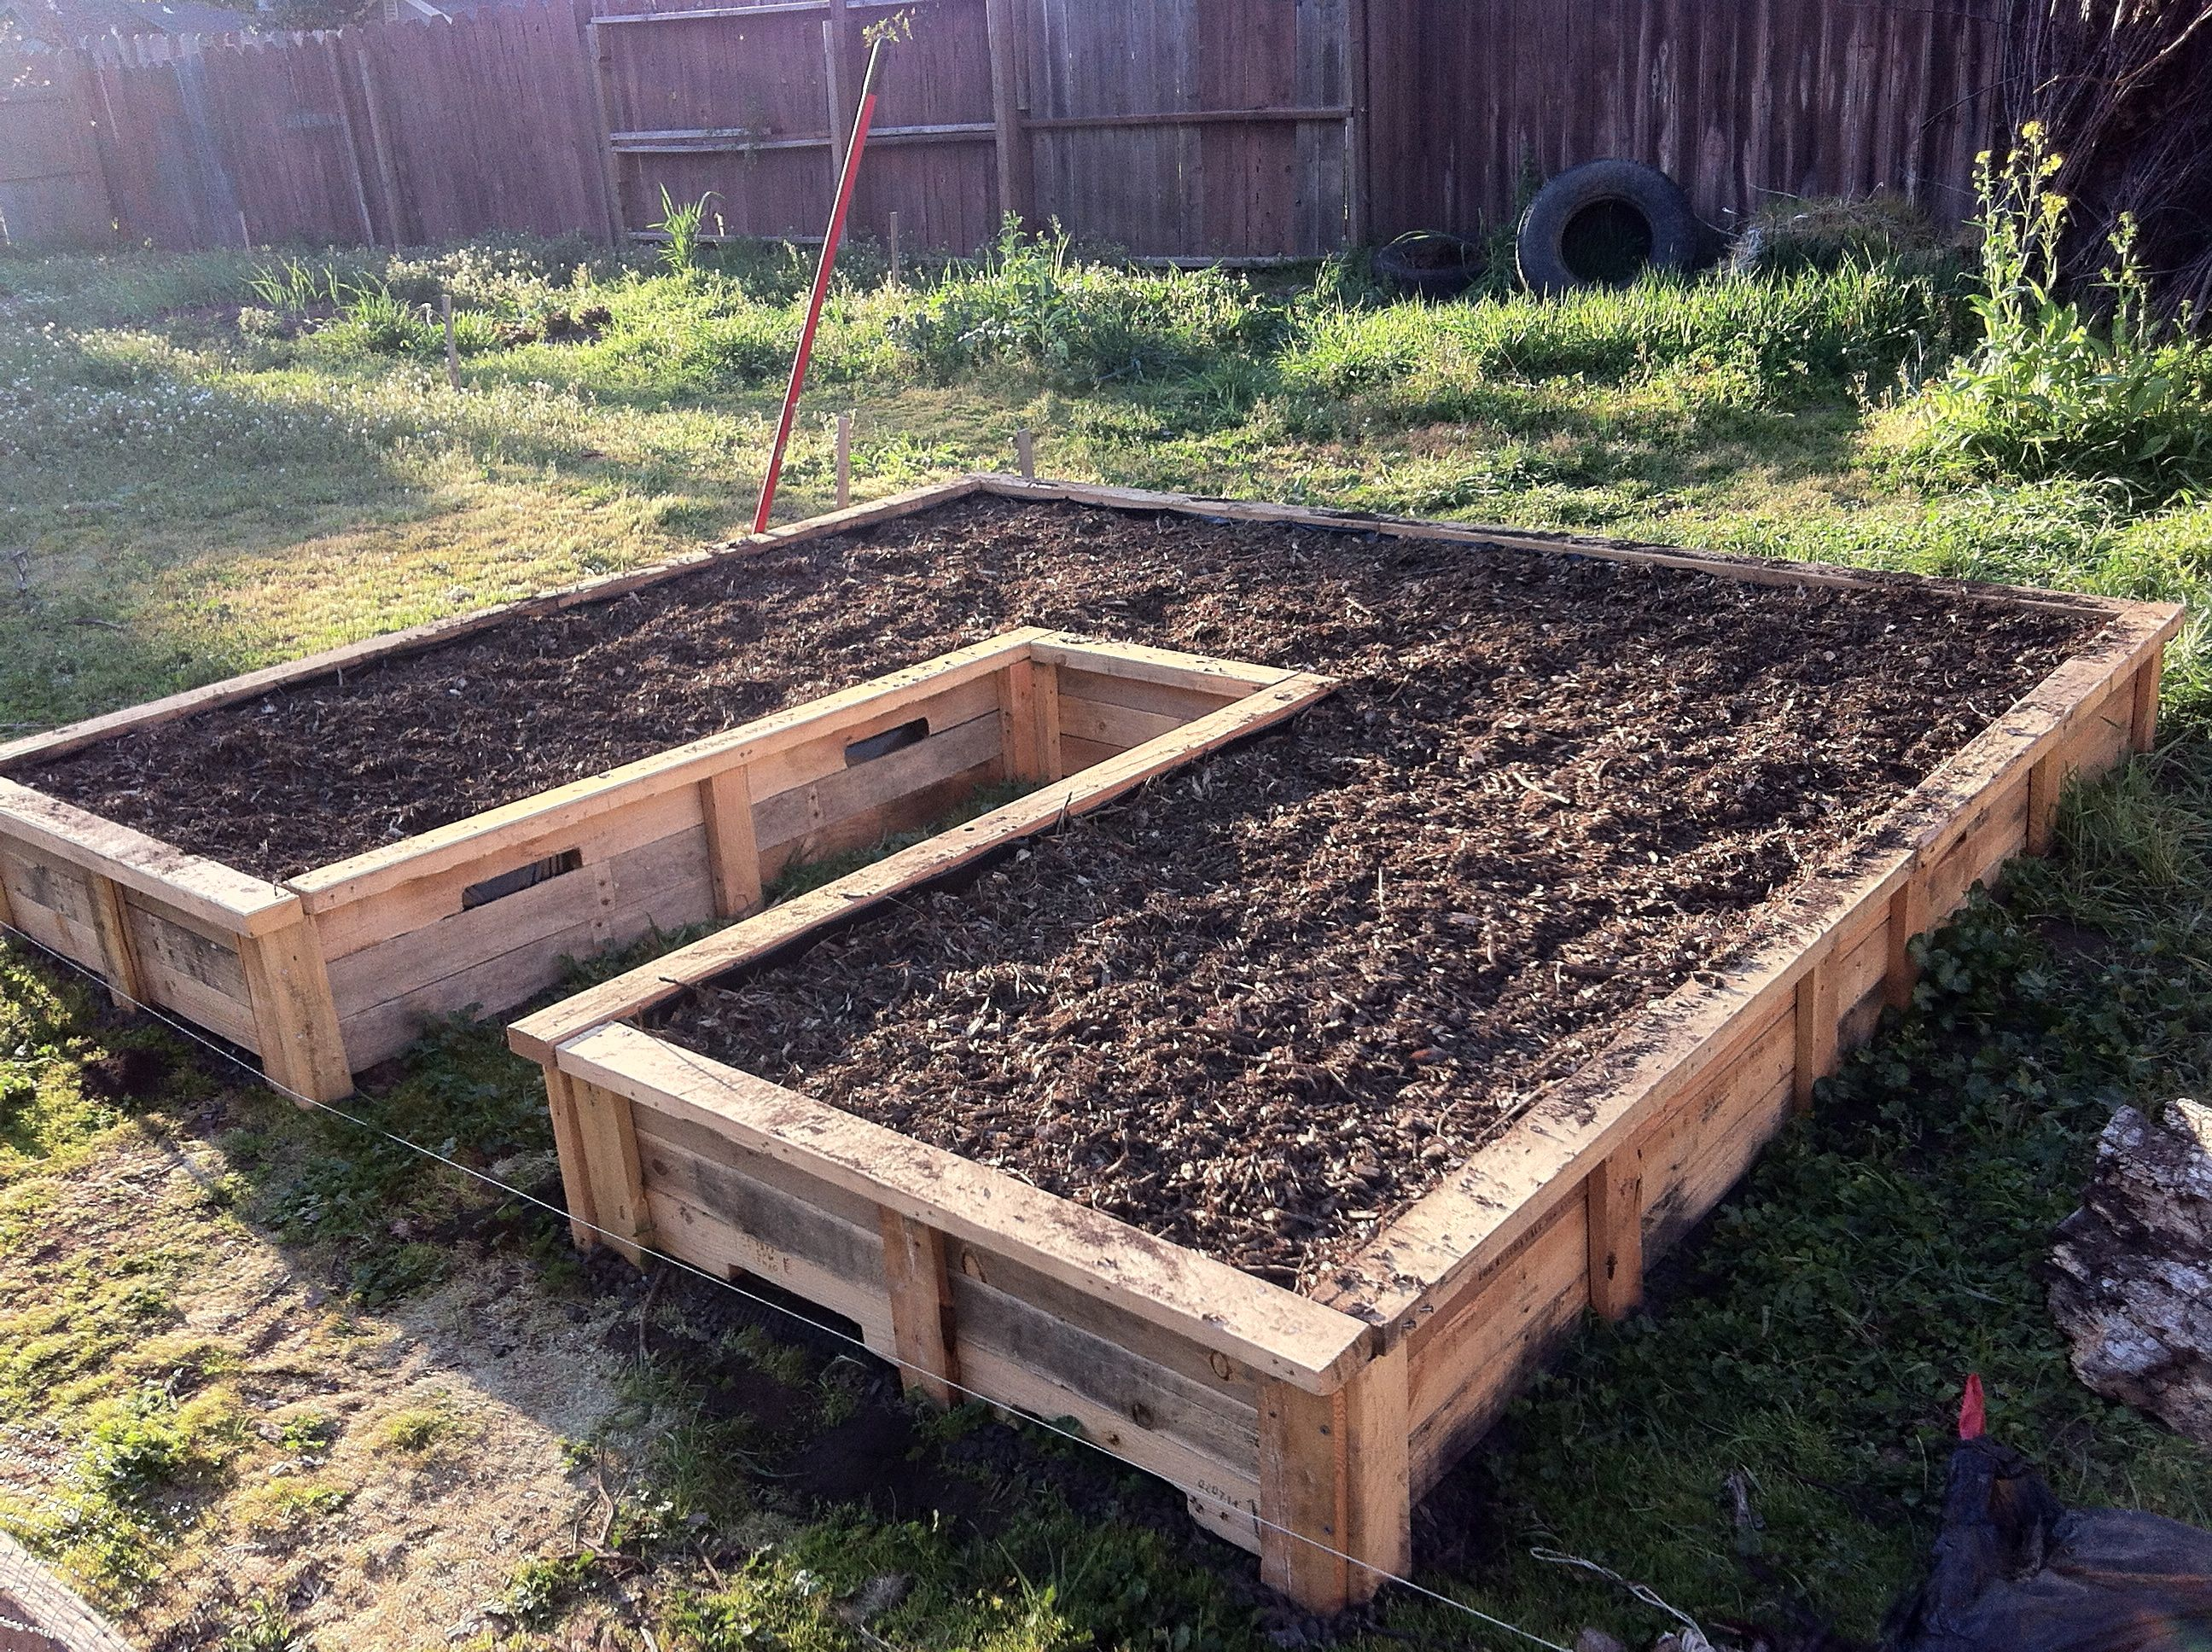 10u2032 X 10u2032 Keyhole Raised Bed Made From Shipping Pallets | 25+ Garden